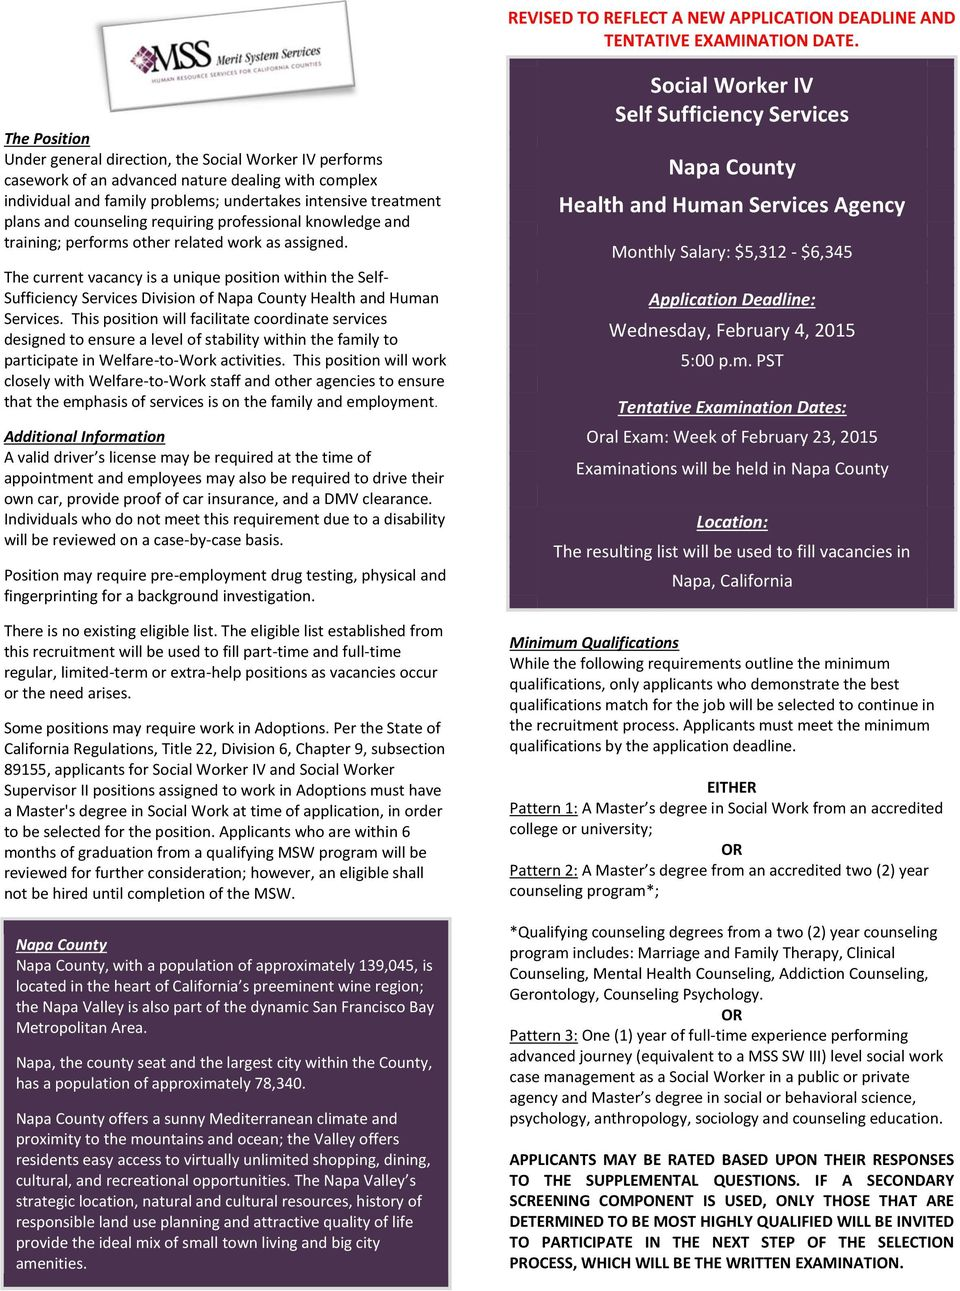 Social Worker Iv Self Sufficiency Services Napa County Health And